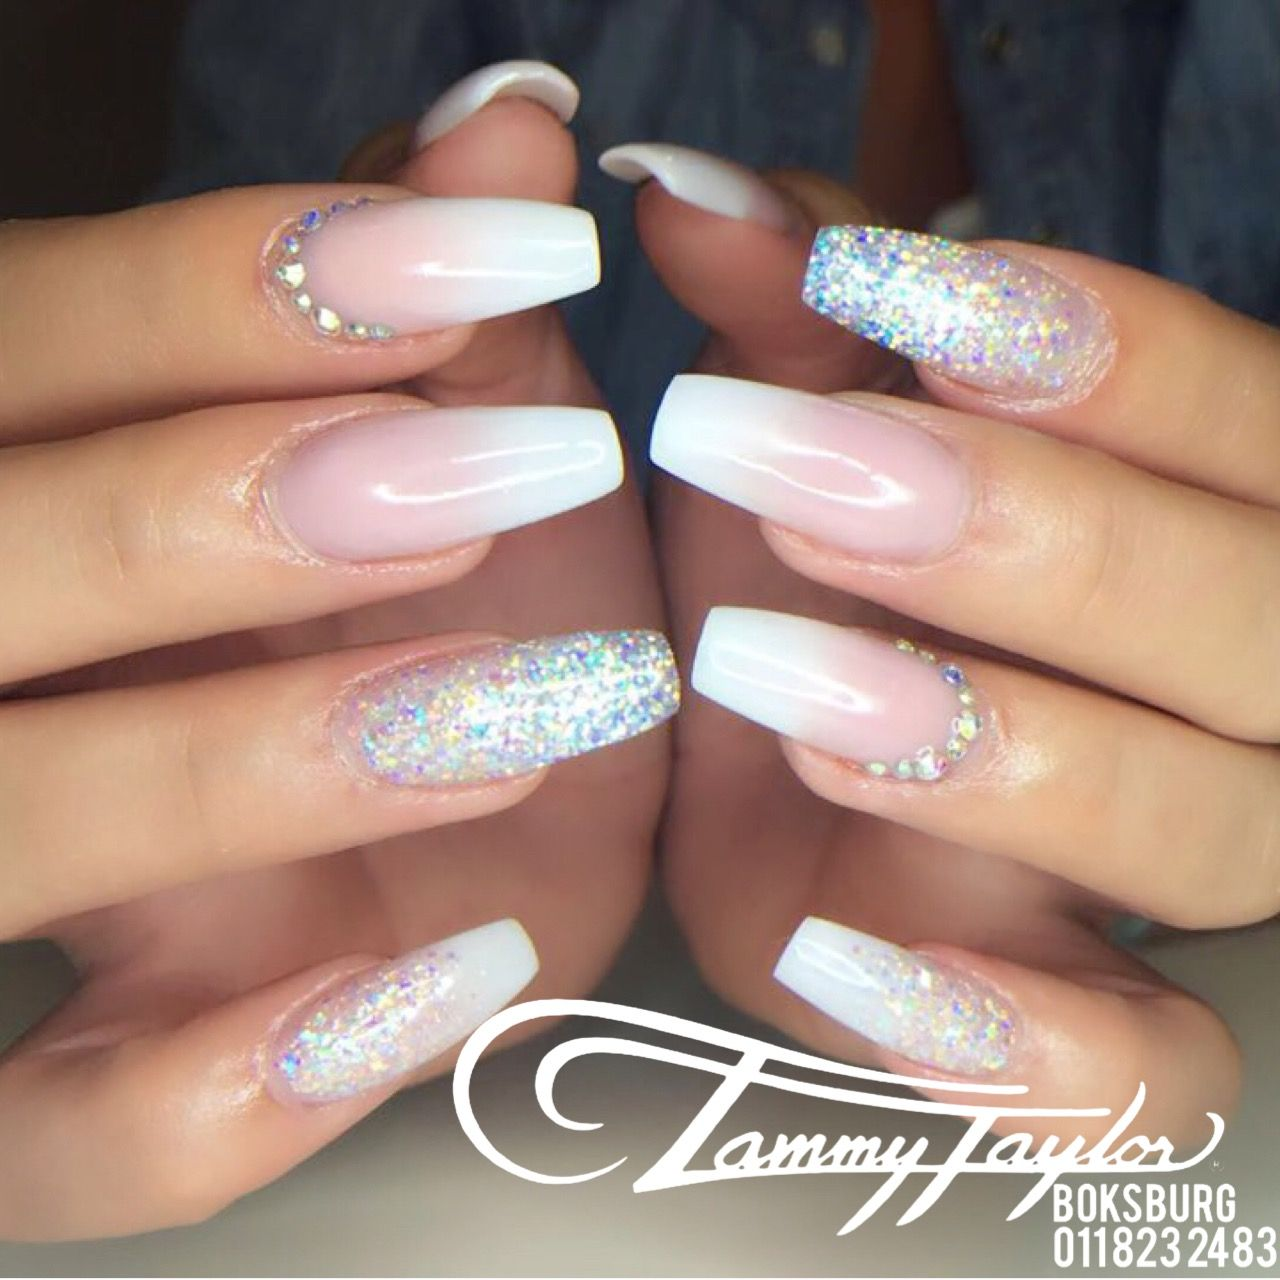 French Fade Nails Crystals Tammytaylor Faded Nails Ombre Nails Glitter French Fade Nails